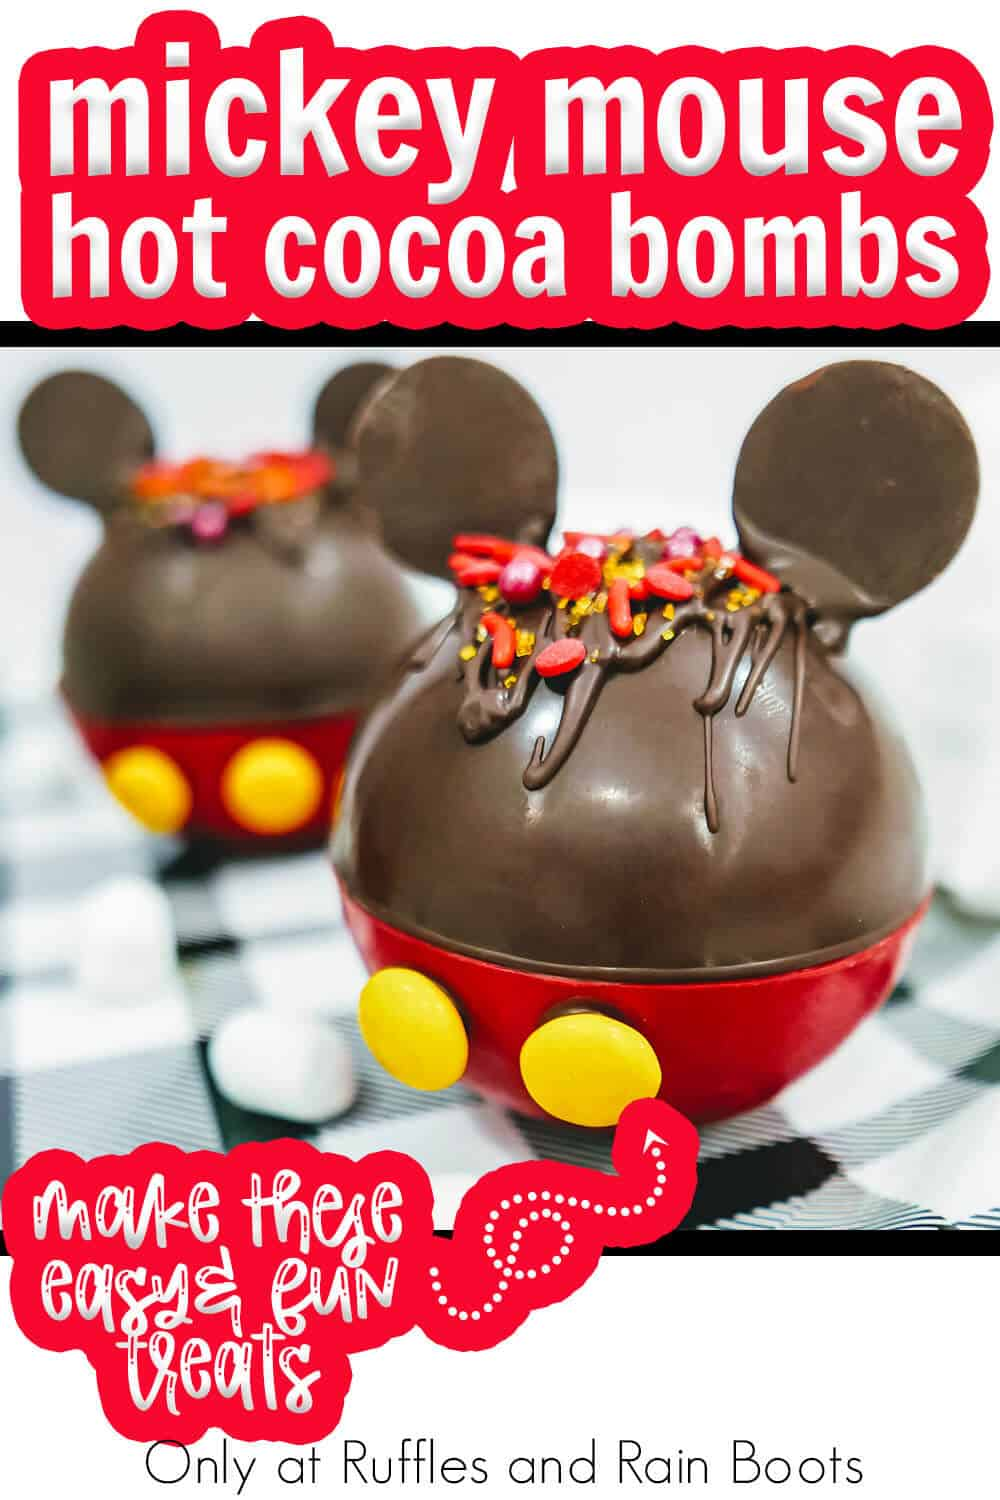 mickey ears hot chocolate bombs with text which reads mickey mouse hot cocoa bombs make these easy & fun treats